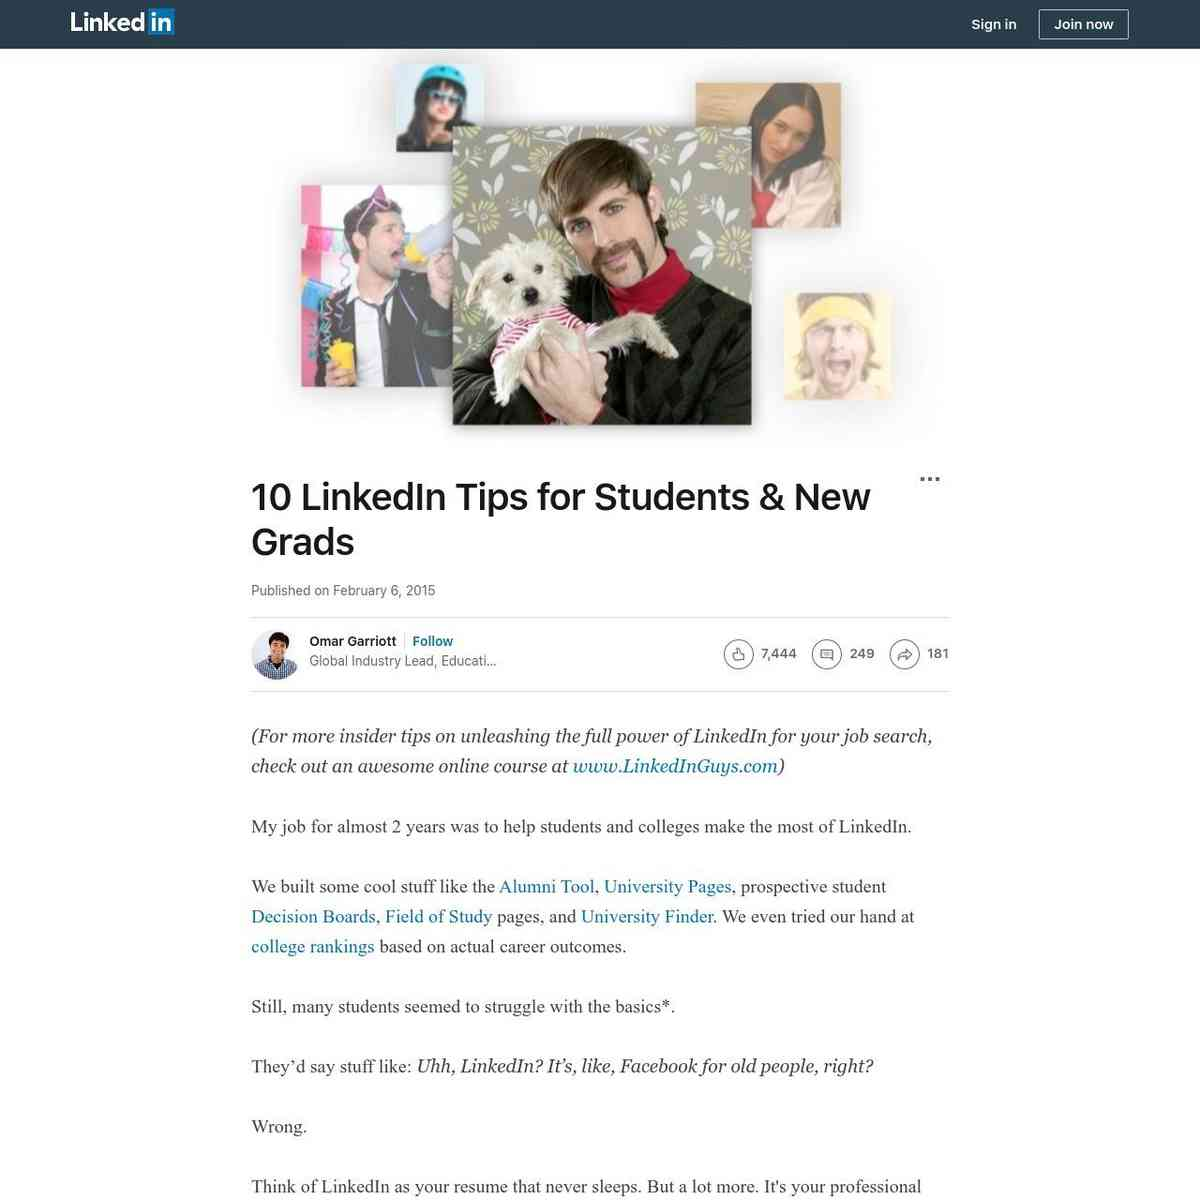 Linked In tips for students & new grads